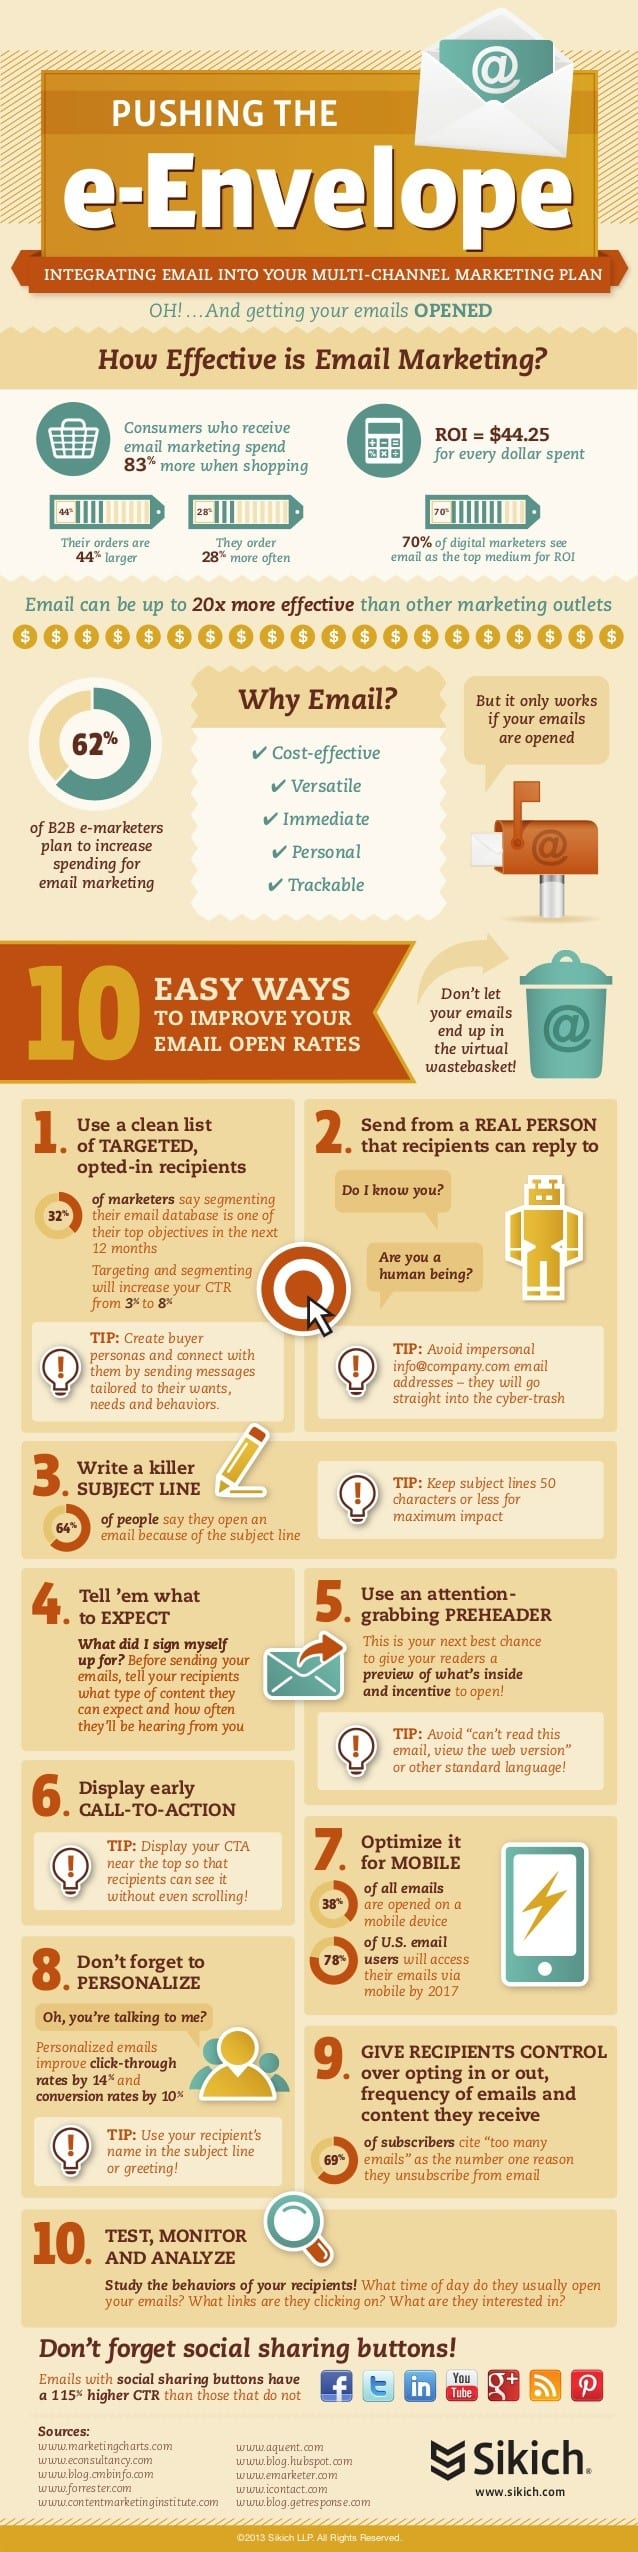 15077-improve-your-email-open-rates-email-marketing-infographic.jpg